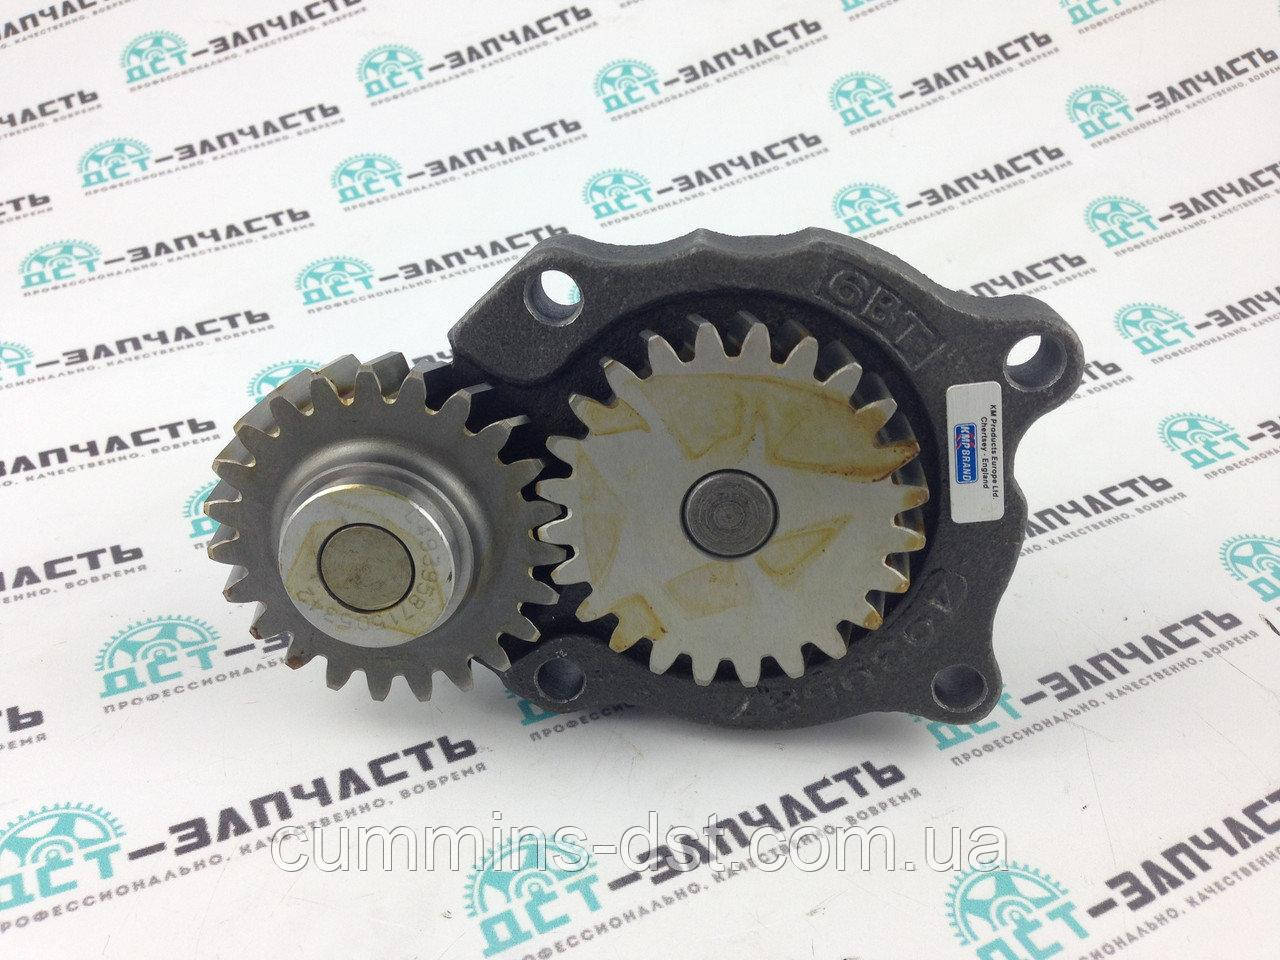 Масляный насос CASE 860/8840/4308 DAF45/55 YUTONG ZK-6737D/ZK6831